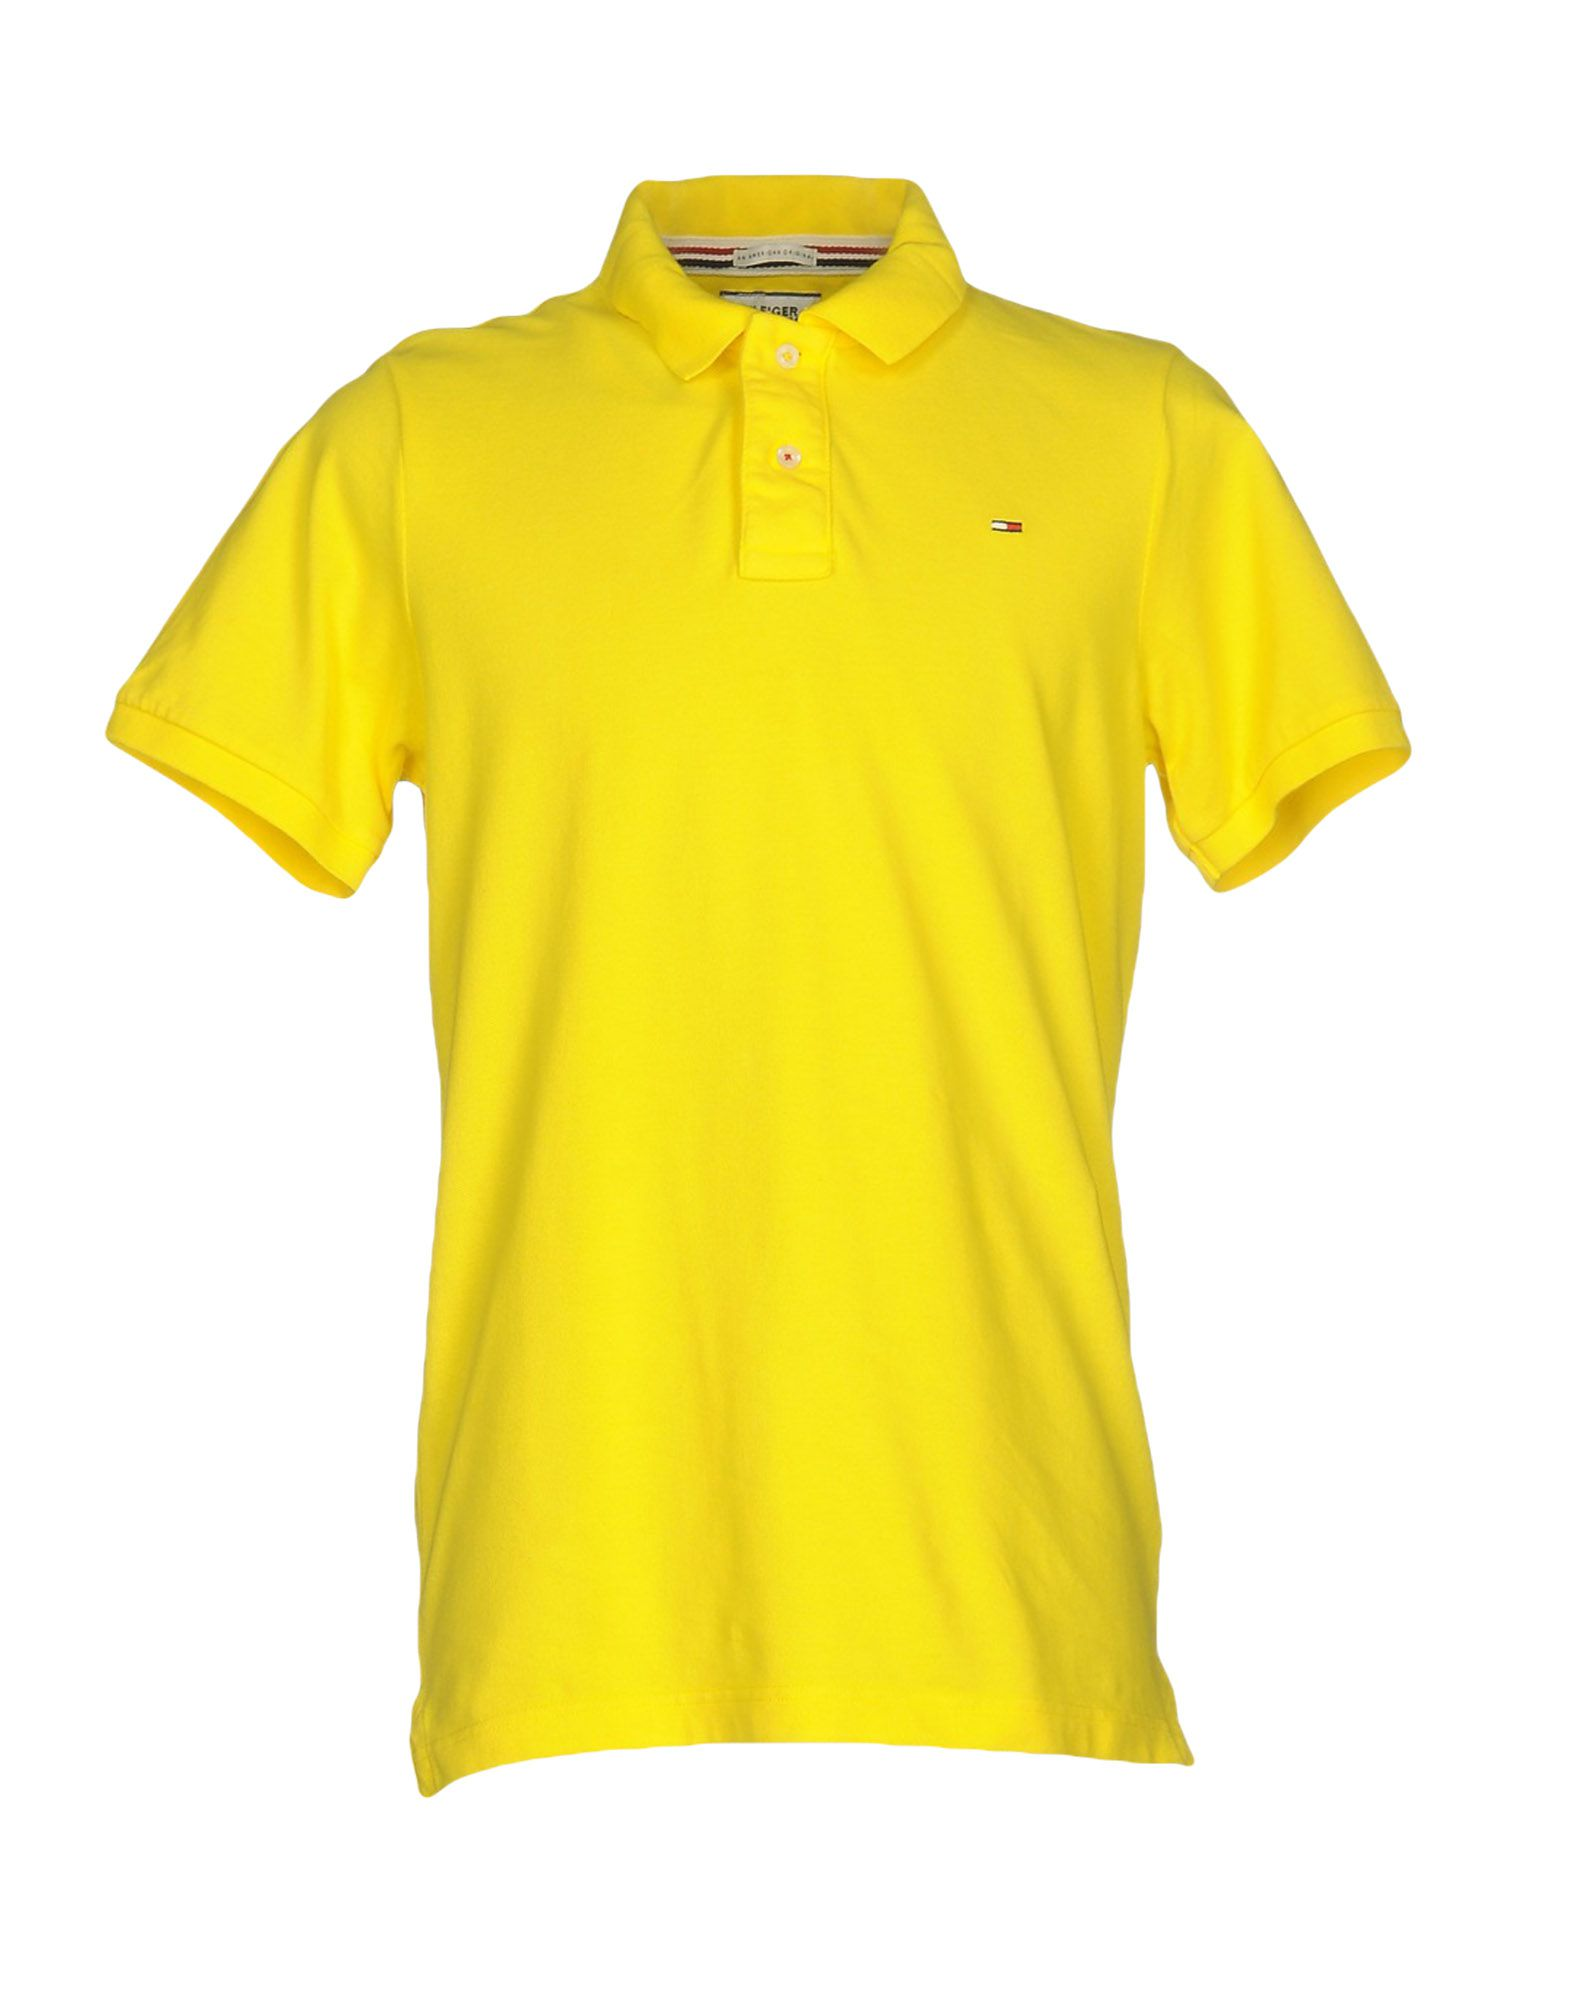 TOMMY JEANS   TOMMY JEANS Polo shirts   Goxip